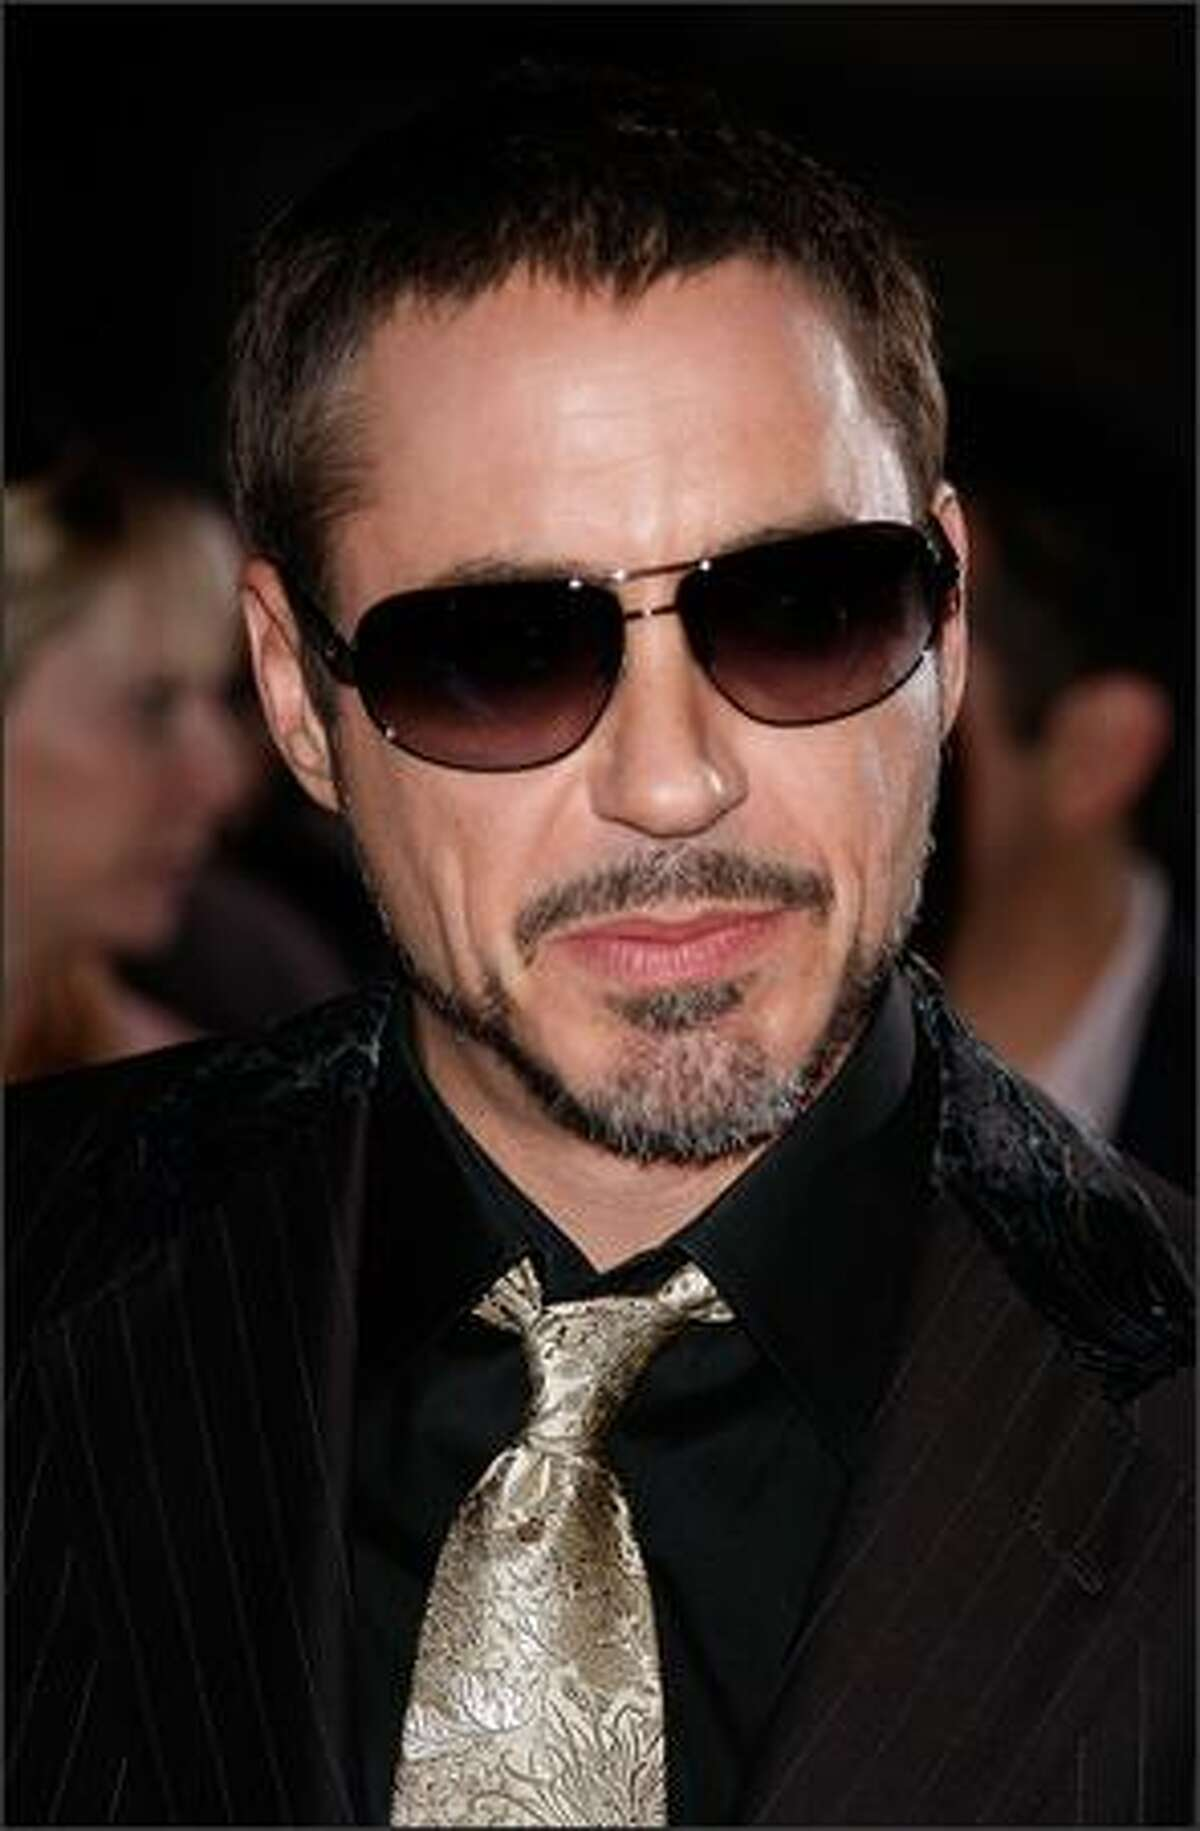 Actor Robert Downey Jr. arrives at the premiere at Grauman's Chinese Theatre.